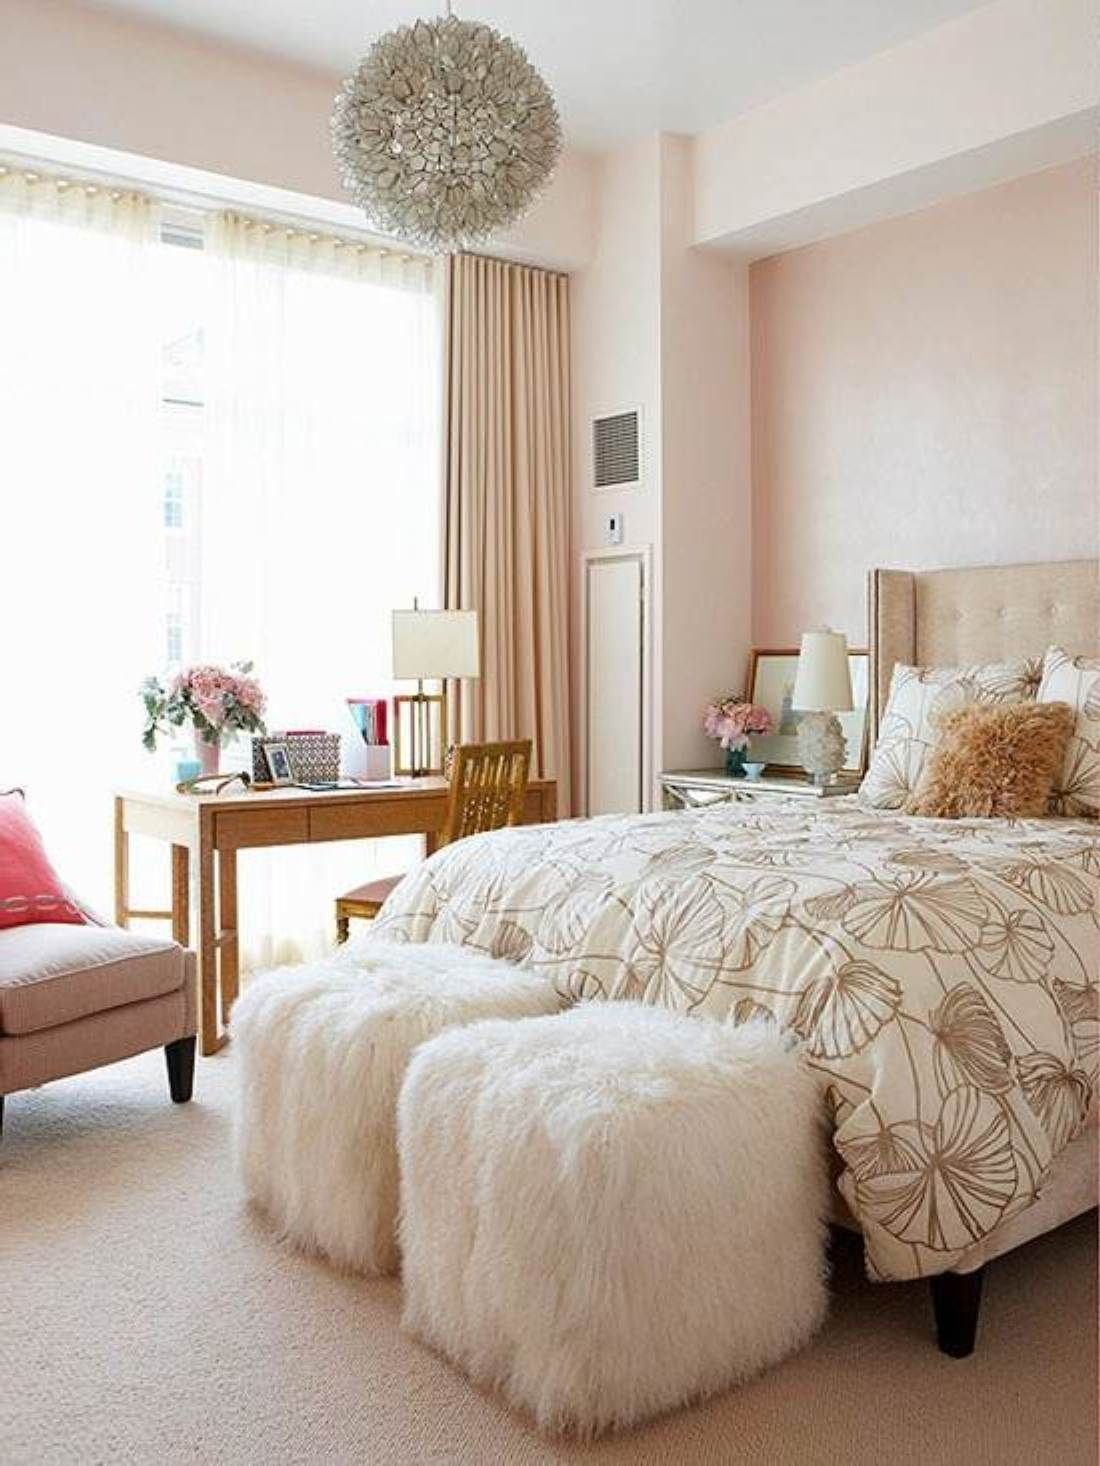 Charming The Bedroom Designs For Women Are Chic, Elegant And Mostly According Their  Personality. If You Are One Such Woman Who Is Looking For Short Of Ideas To  ...